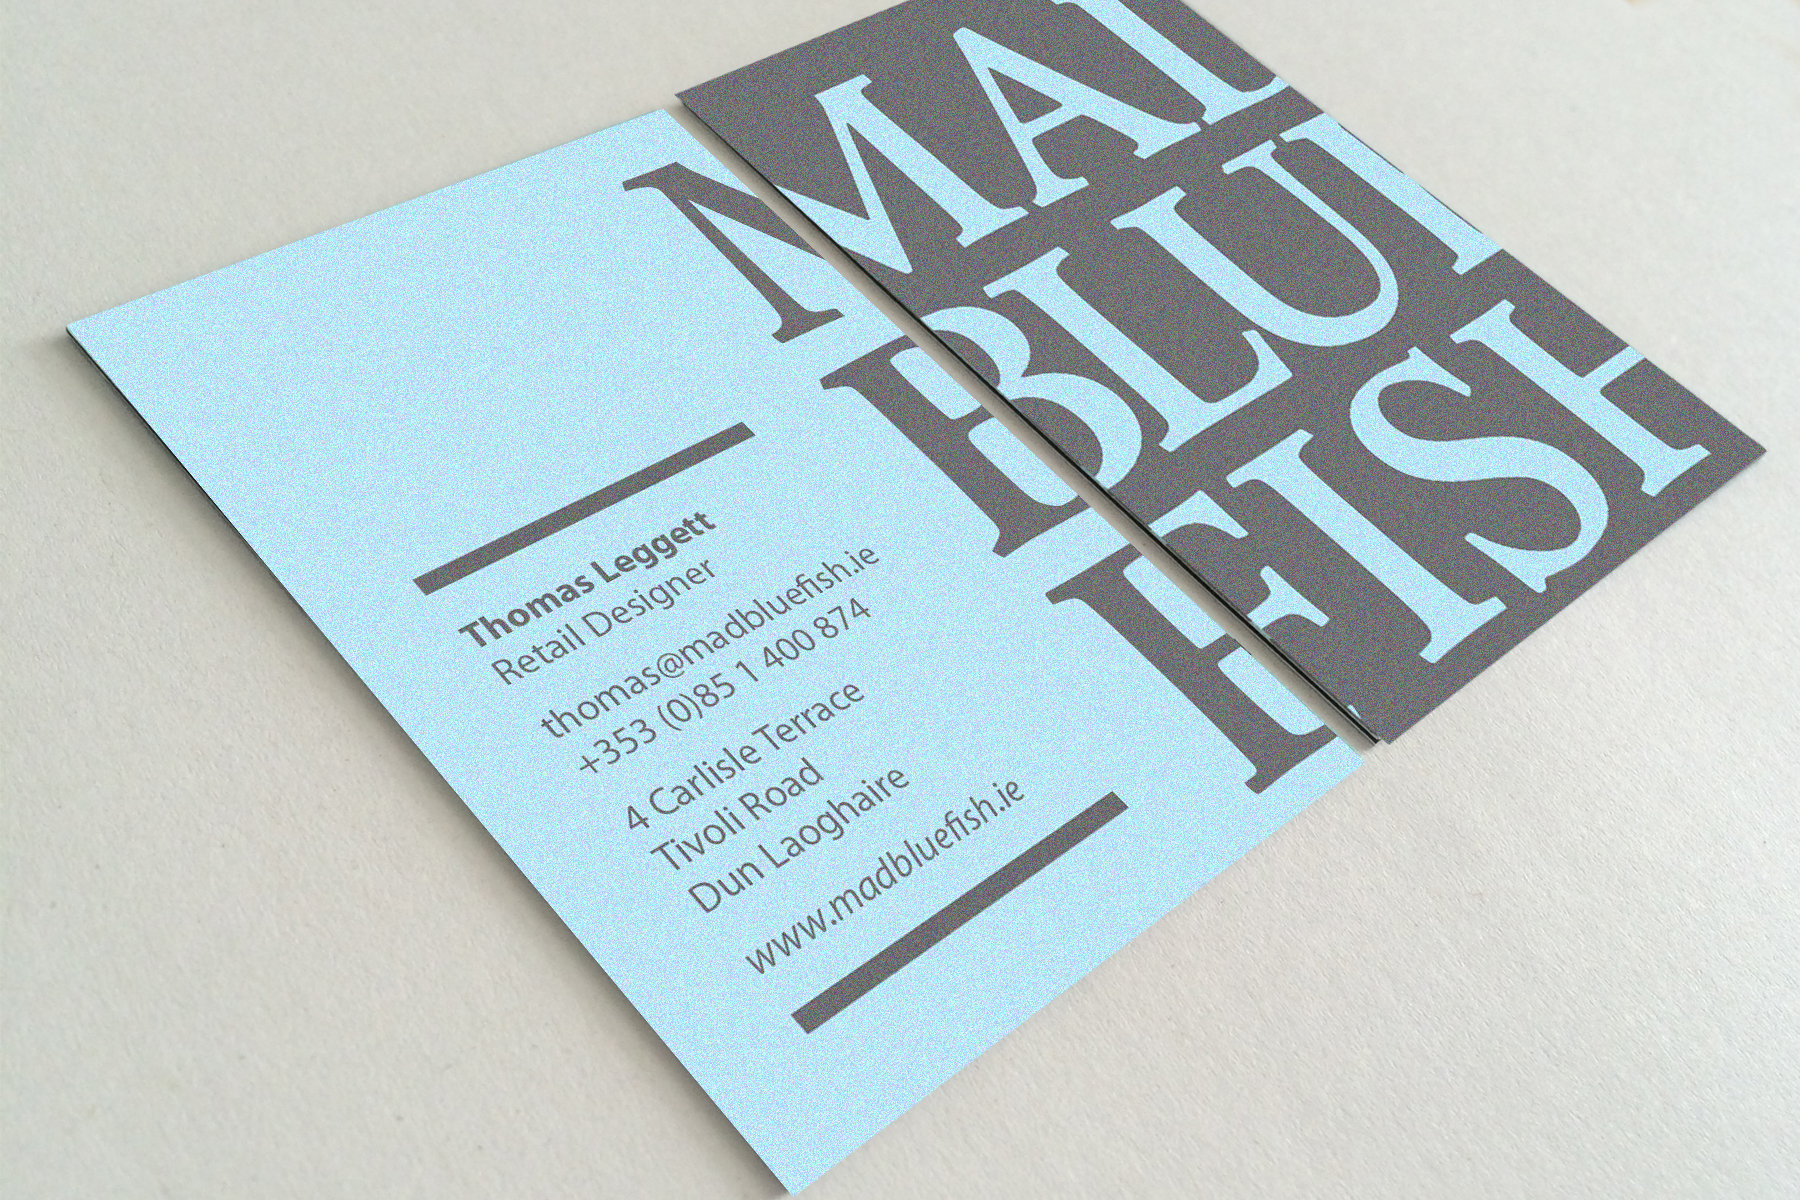 Mad-Blue-Fish-business-card.jpg